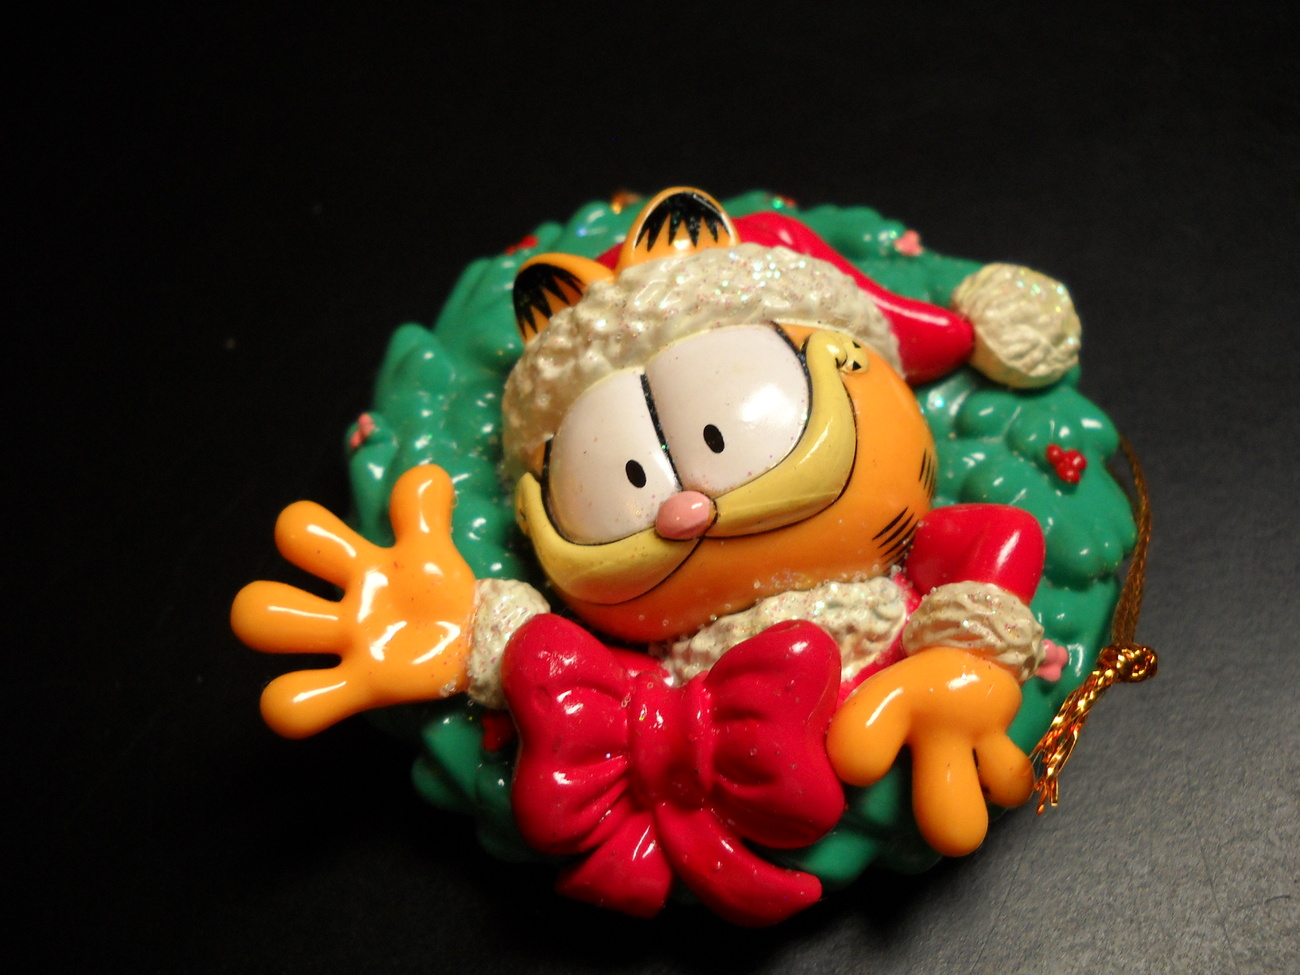 Primary image for Matrix Paws Ornament 1996 Garfield's Trim A Tree Garfield in Christmas Wreath